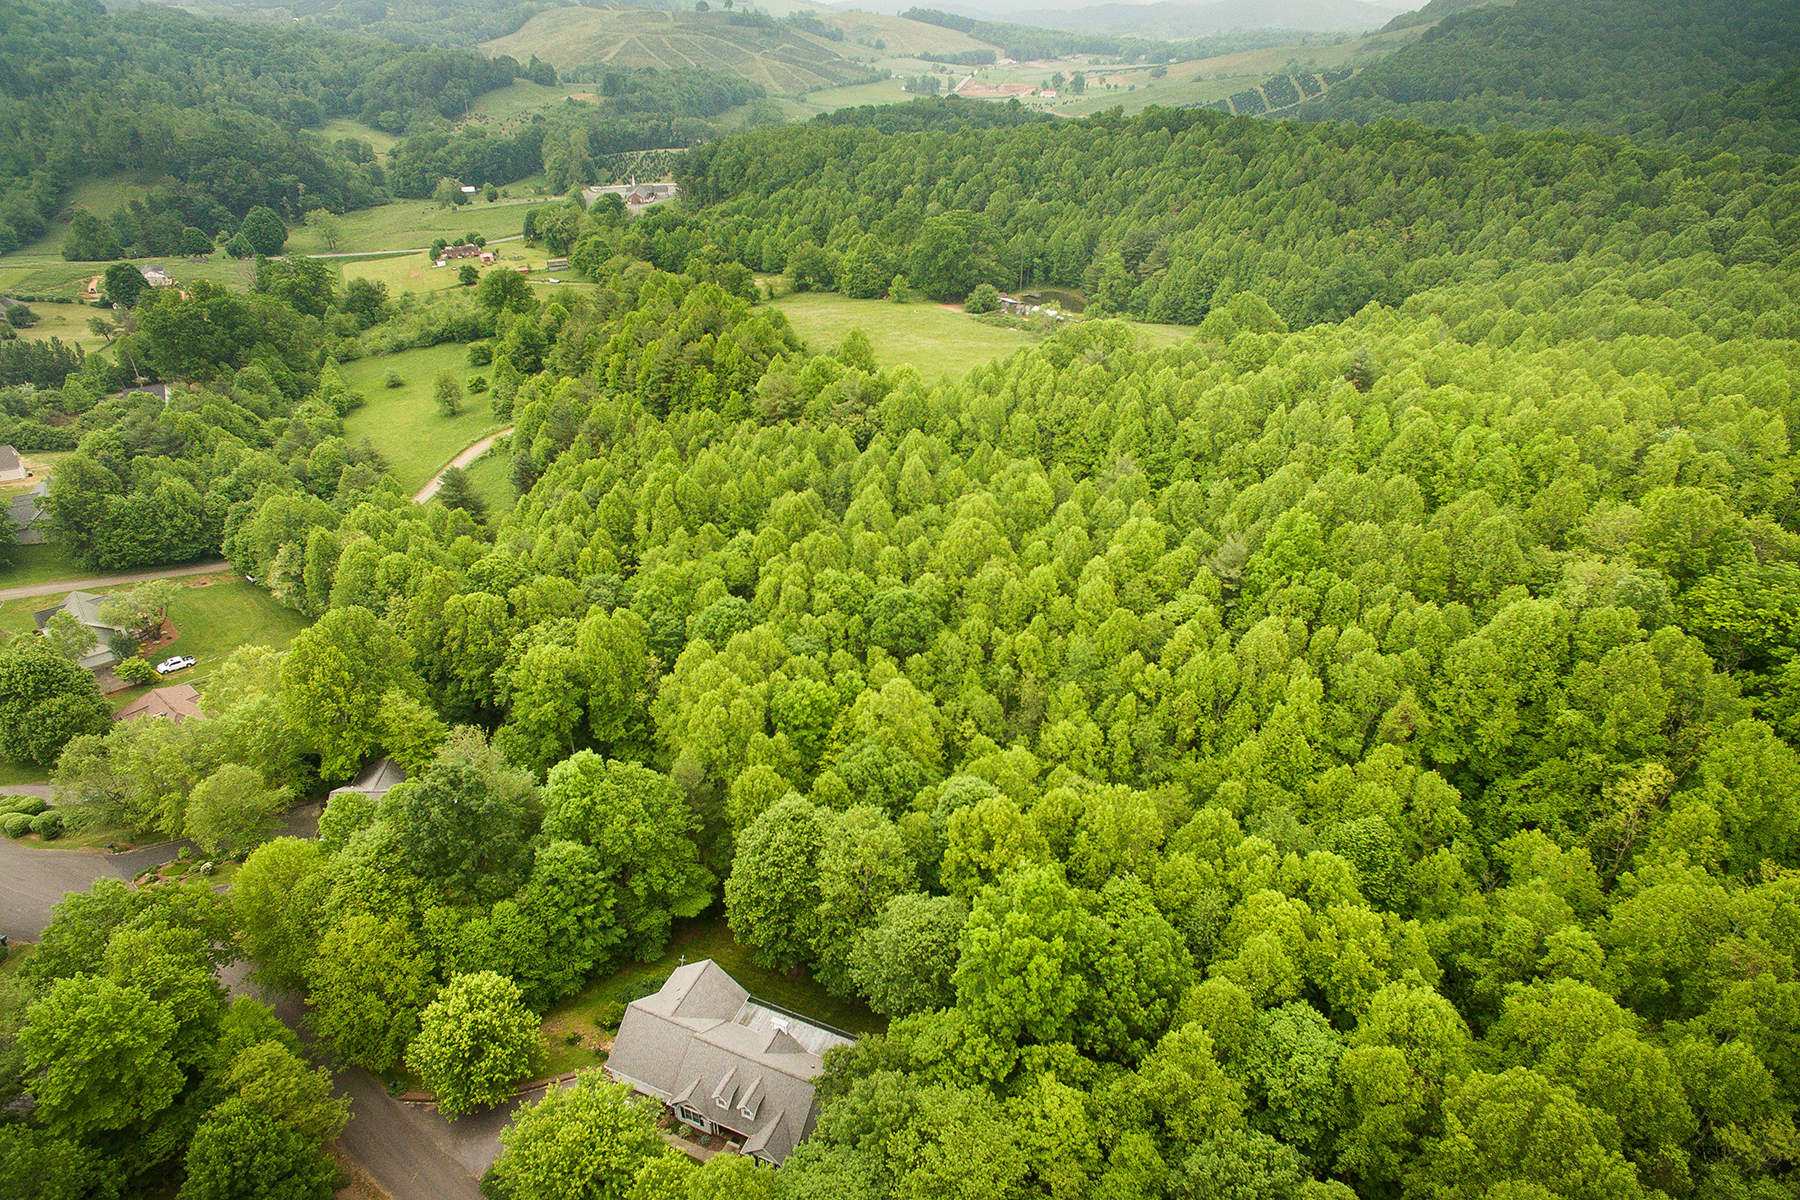 Land for Sale at BUCK MOUNTAIN HEIGHTS - WEST JEFFERSON Lot 50 White Tail Trl West Jefferson, North Carolina 28694 United States